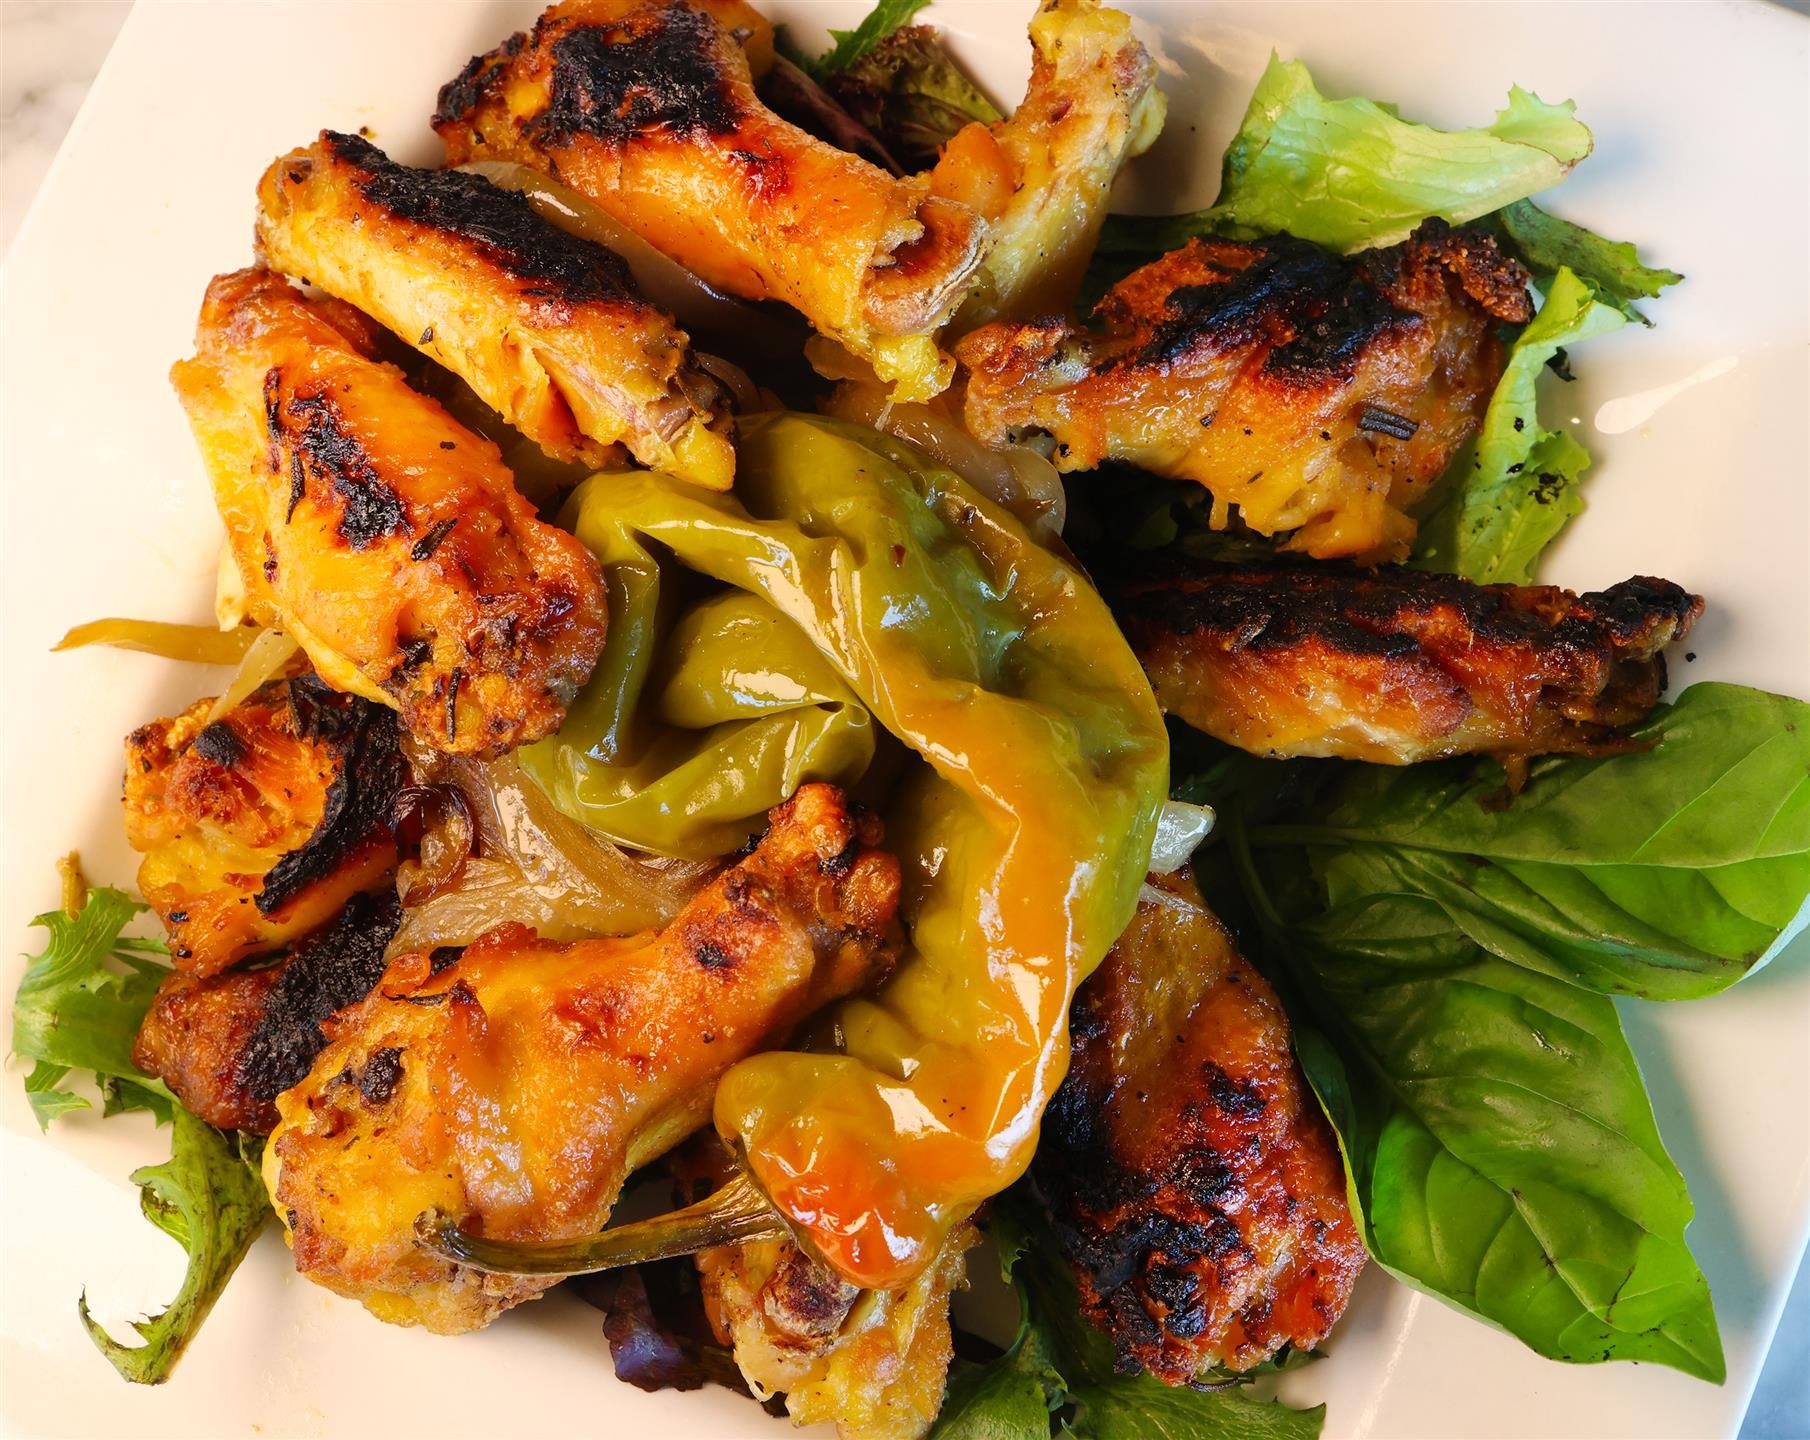 wings with Caramelized Onions, And Long Hot pepper